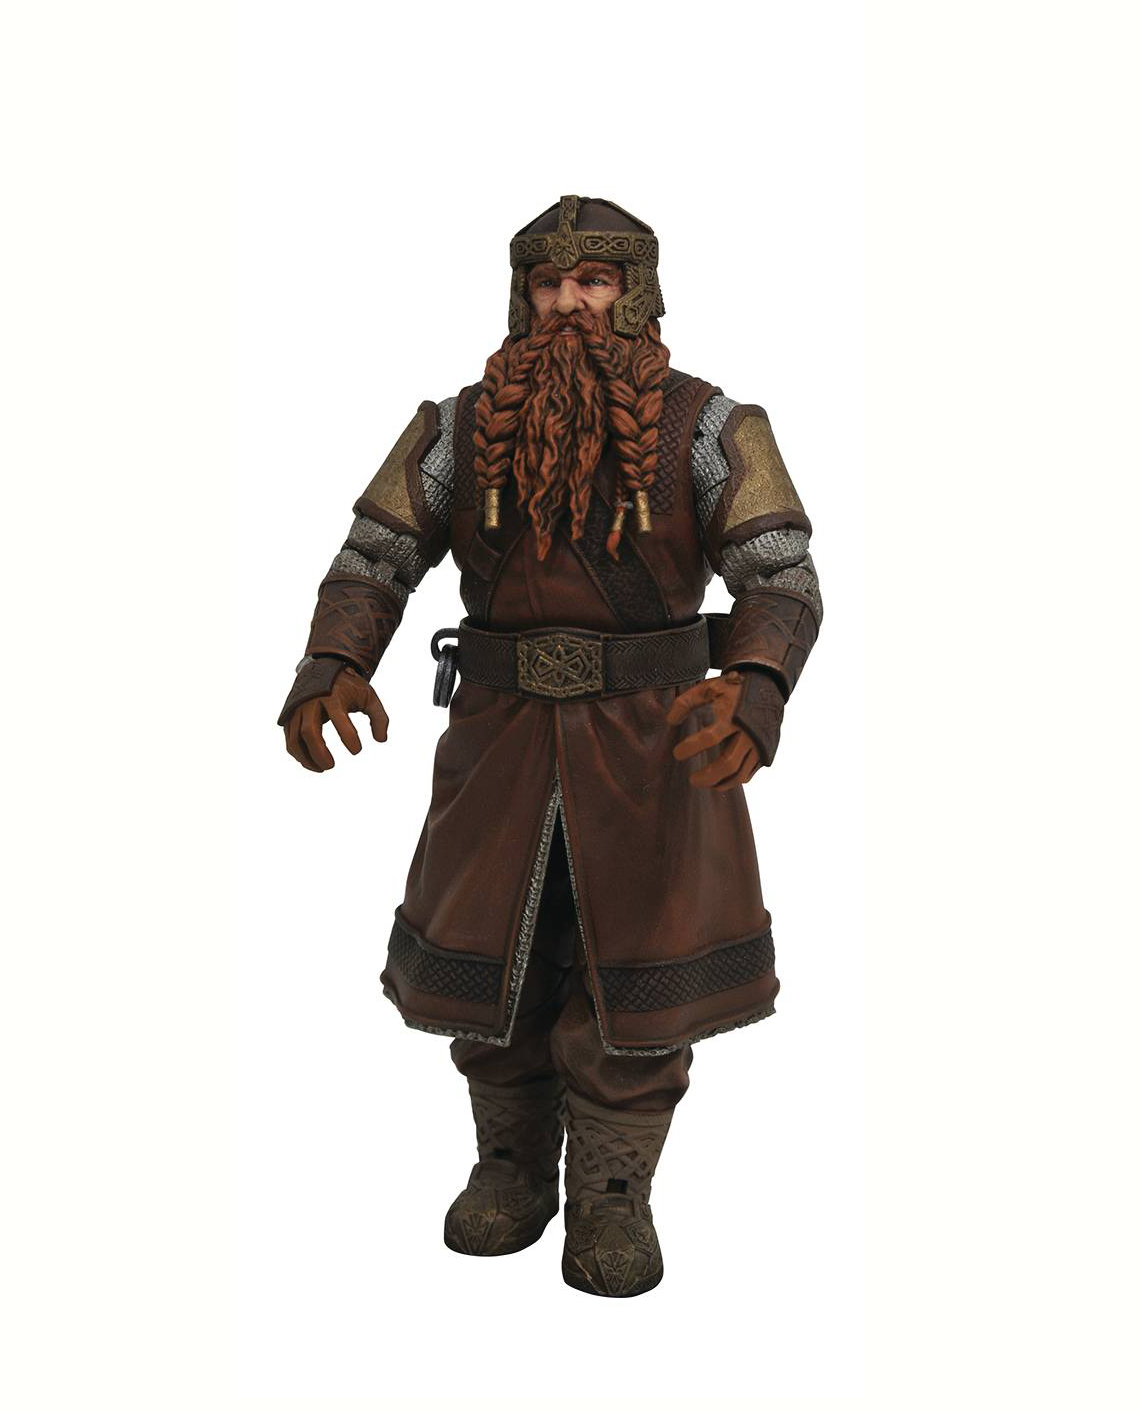 "Lord of the Rings 7"" Action Figure: Series 1 - Gimli"